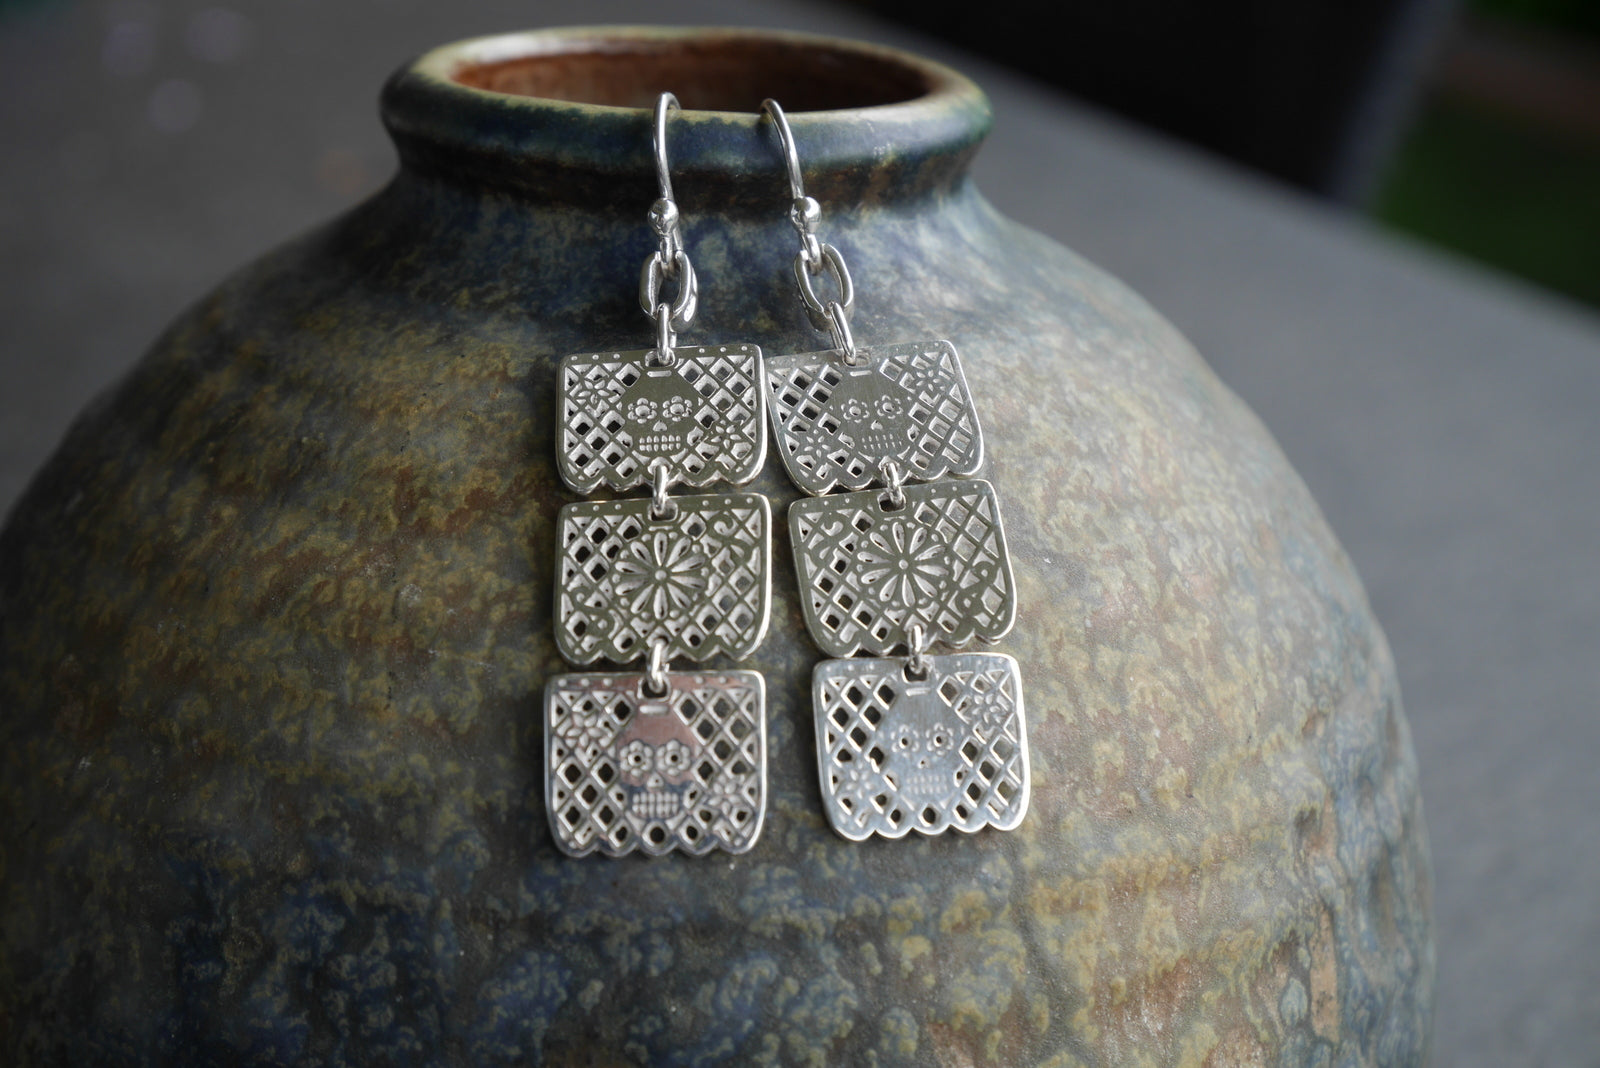 Tenamatzli Orfebres - Silver Papel Picado Earrings